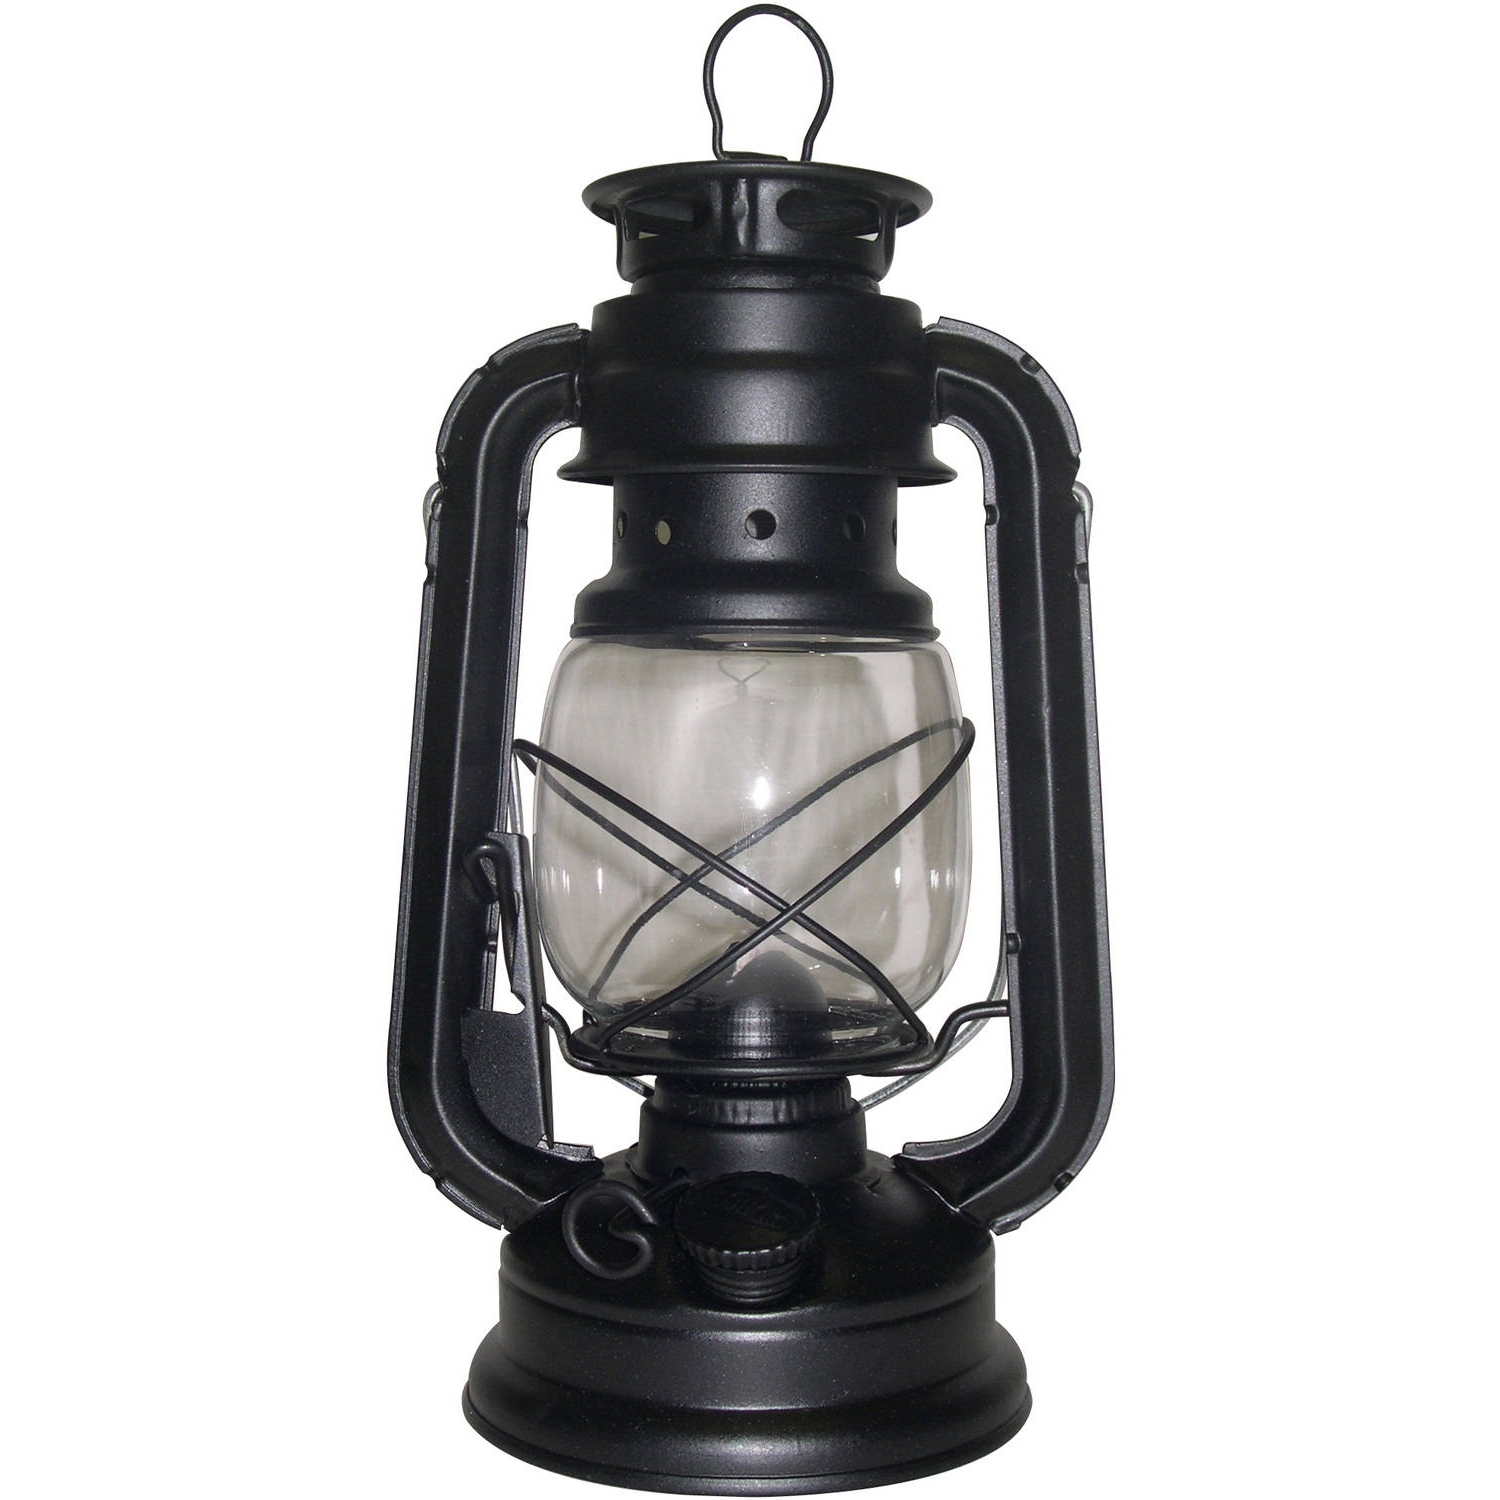 Hurricane Oil Lantern Florasense , Black Original Top Quality Indoor Regarding Widely Used Quality Outdoor Lanterns (Gallery 12 of 20)